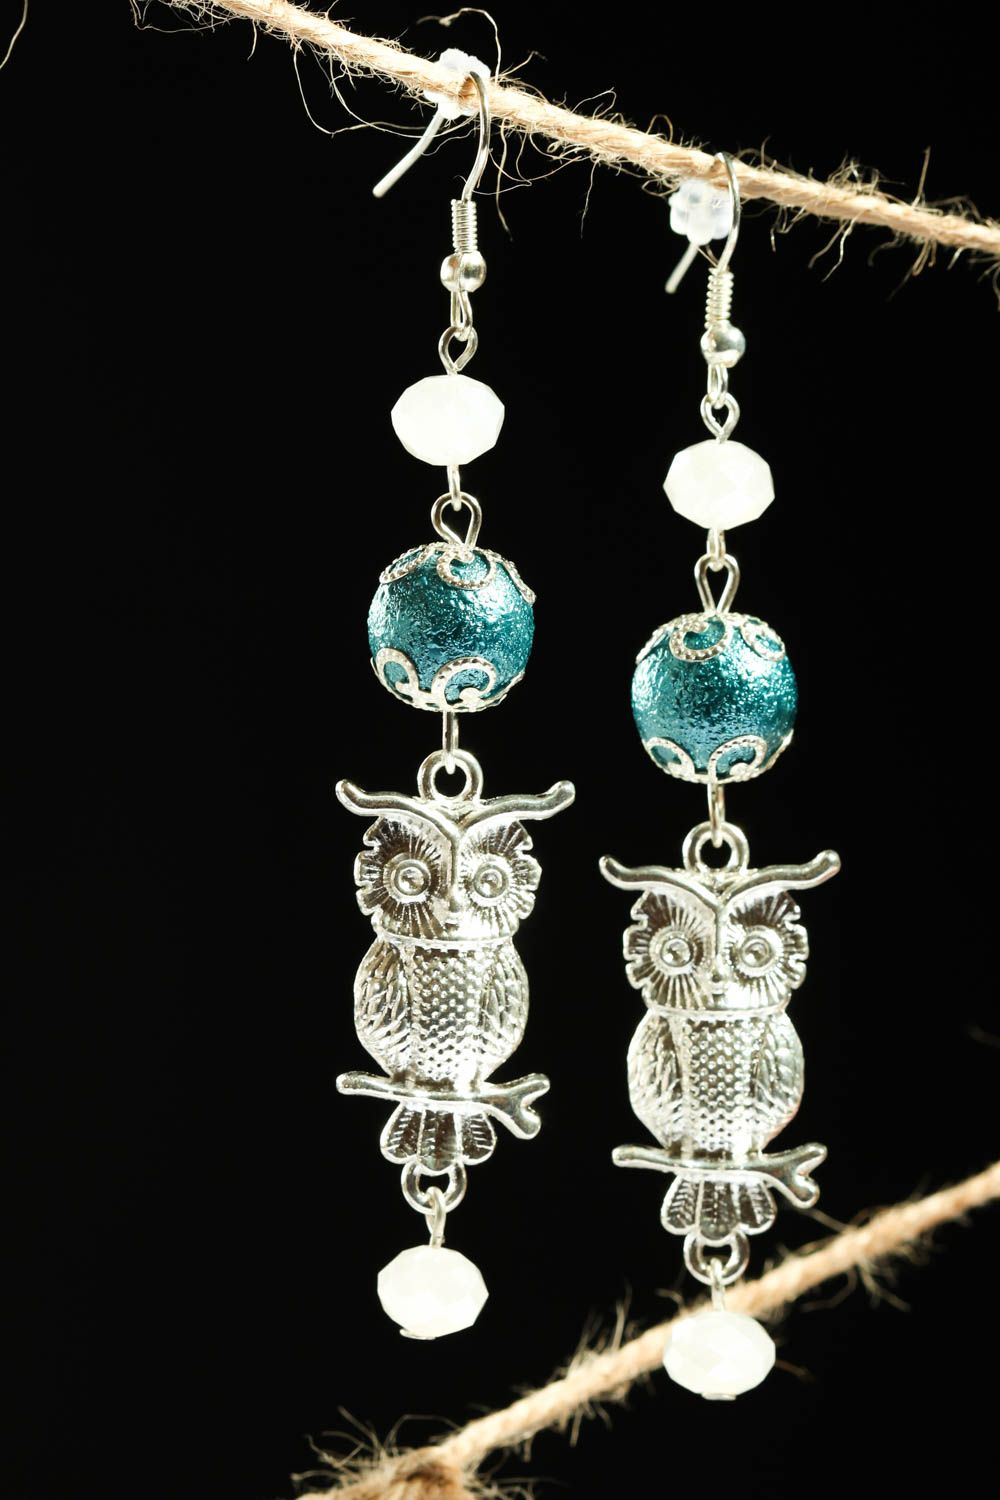 Handmade earrings designer earrings gift ideas beaded jewelry for women photo 1